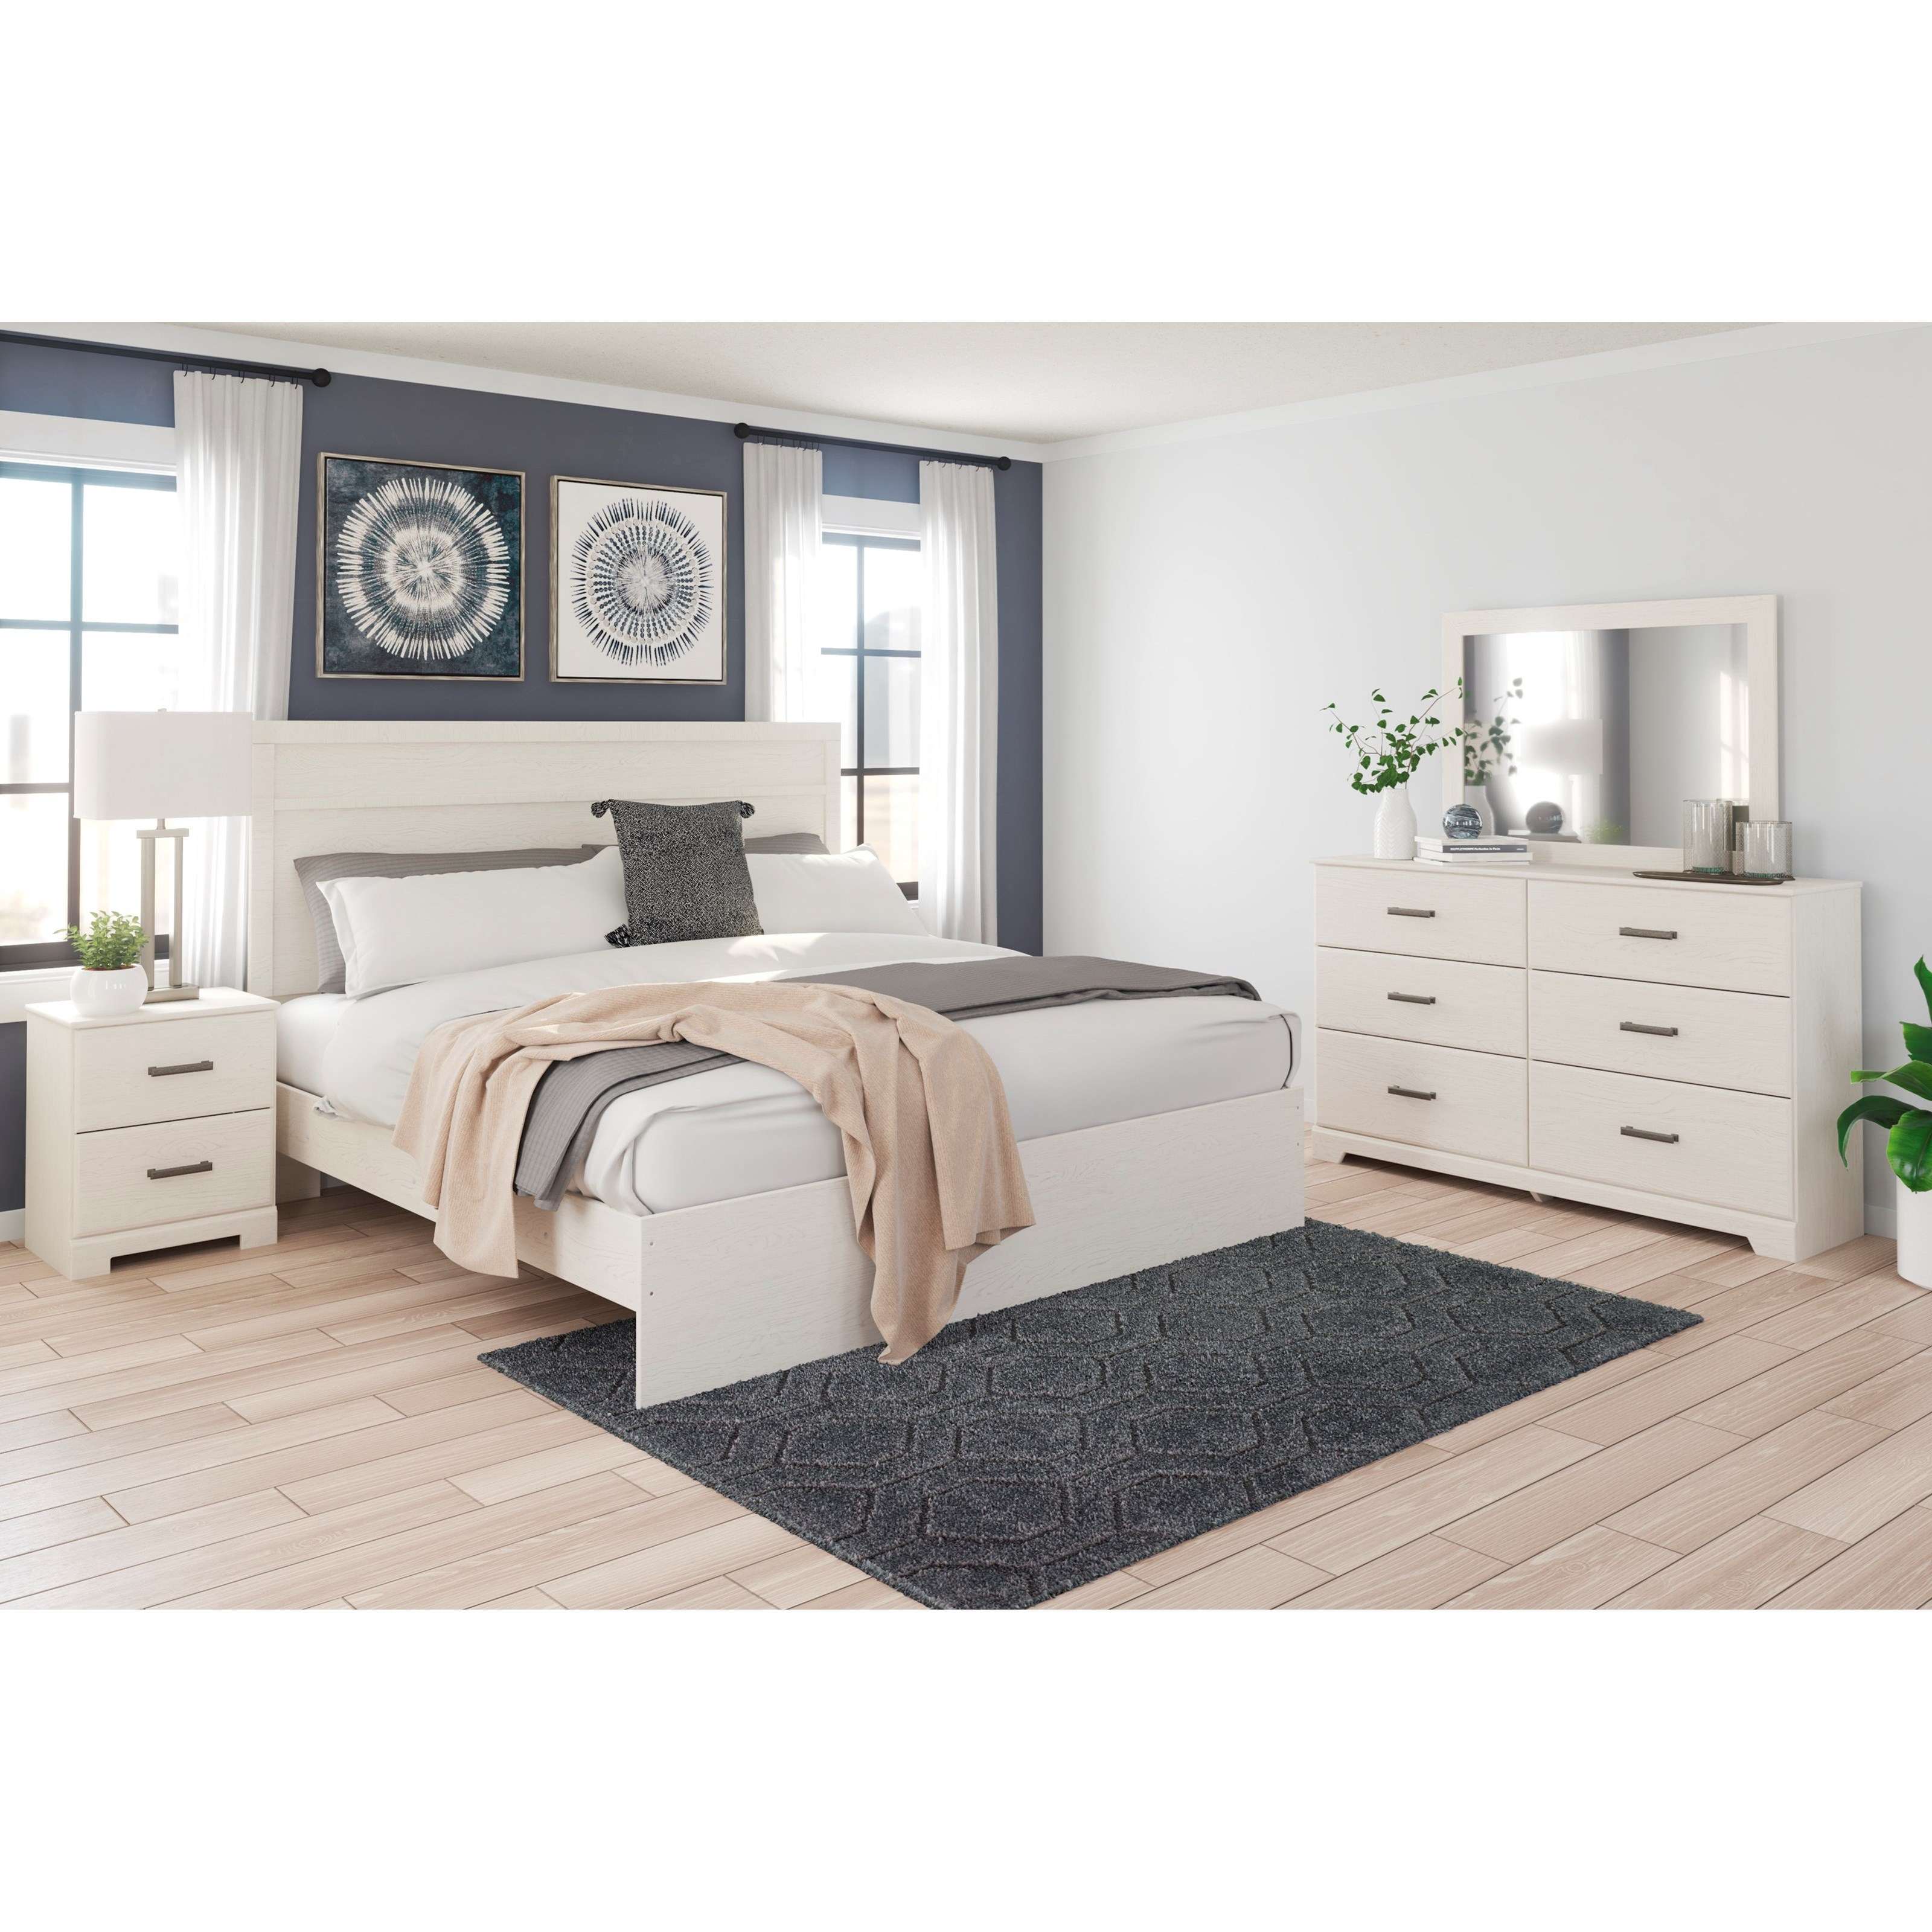 Stelsie King Bedroom Group by Signature Design by Ashley at Rife's Home Furniture